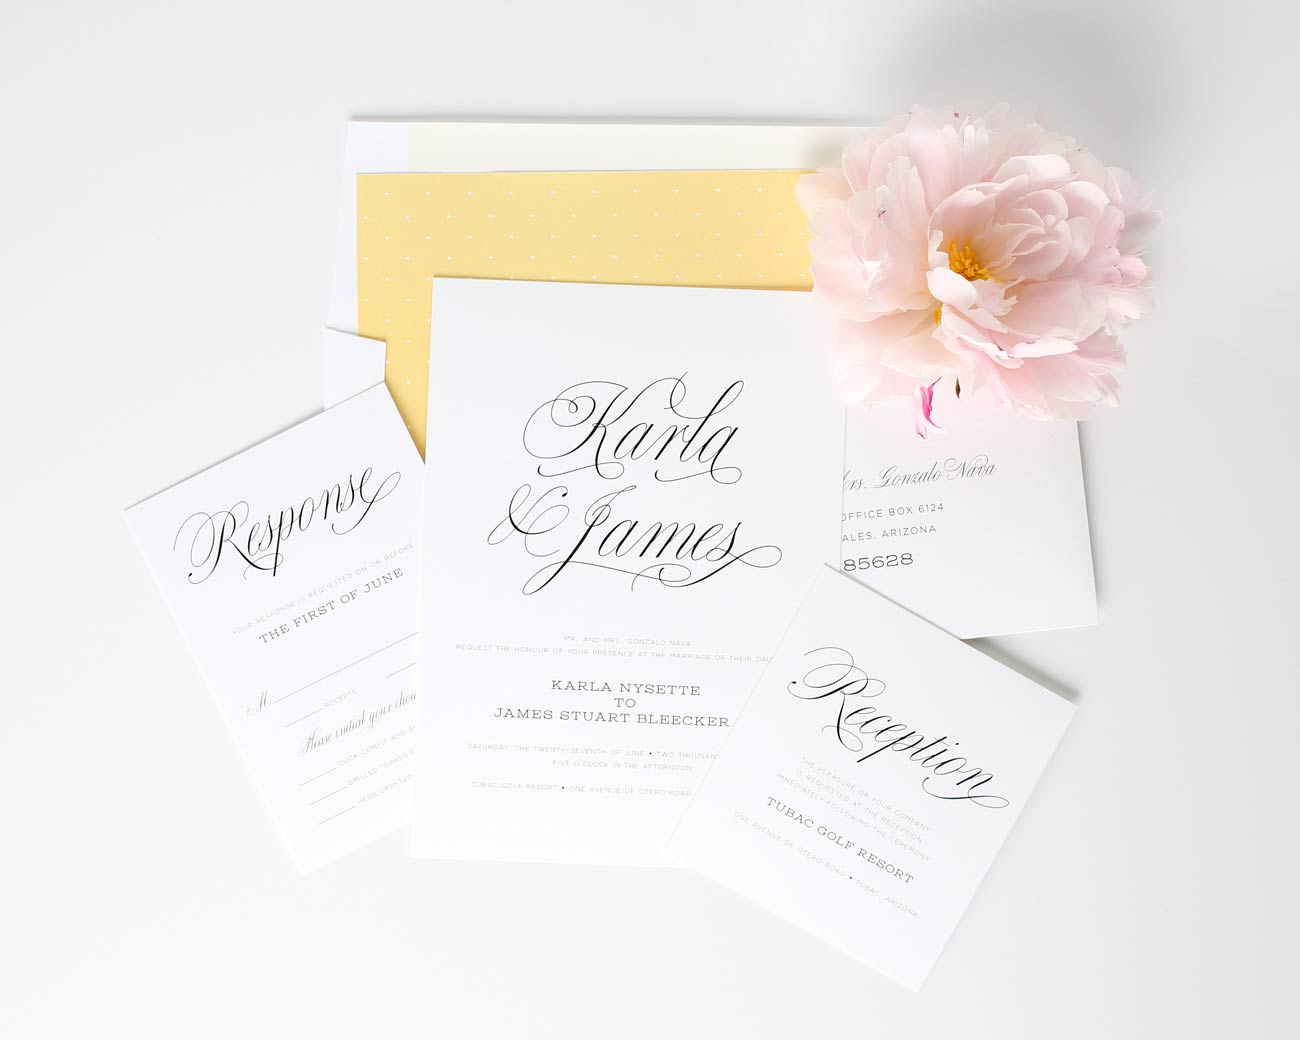 Garden Wedding Invitations: Secret Garden Wedding Invitations